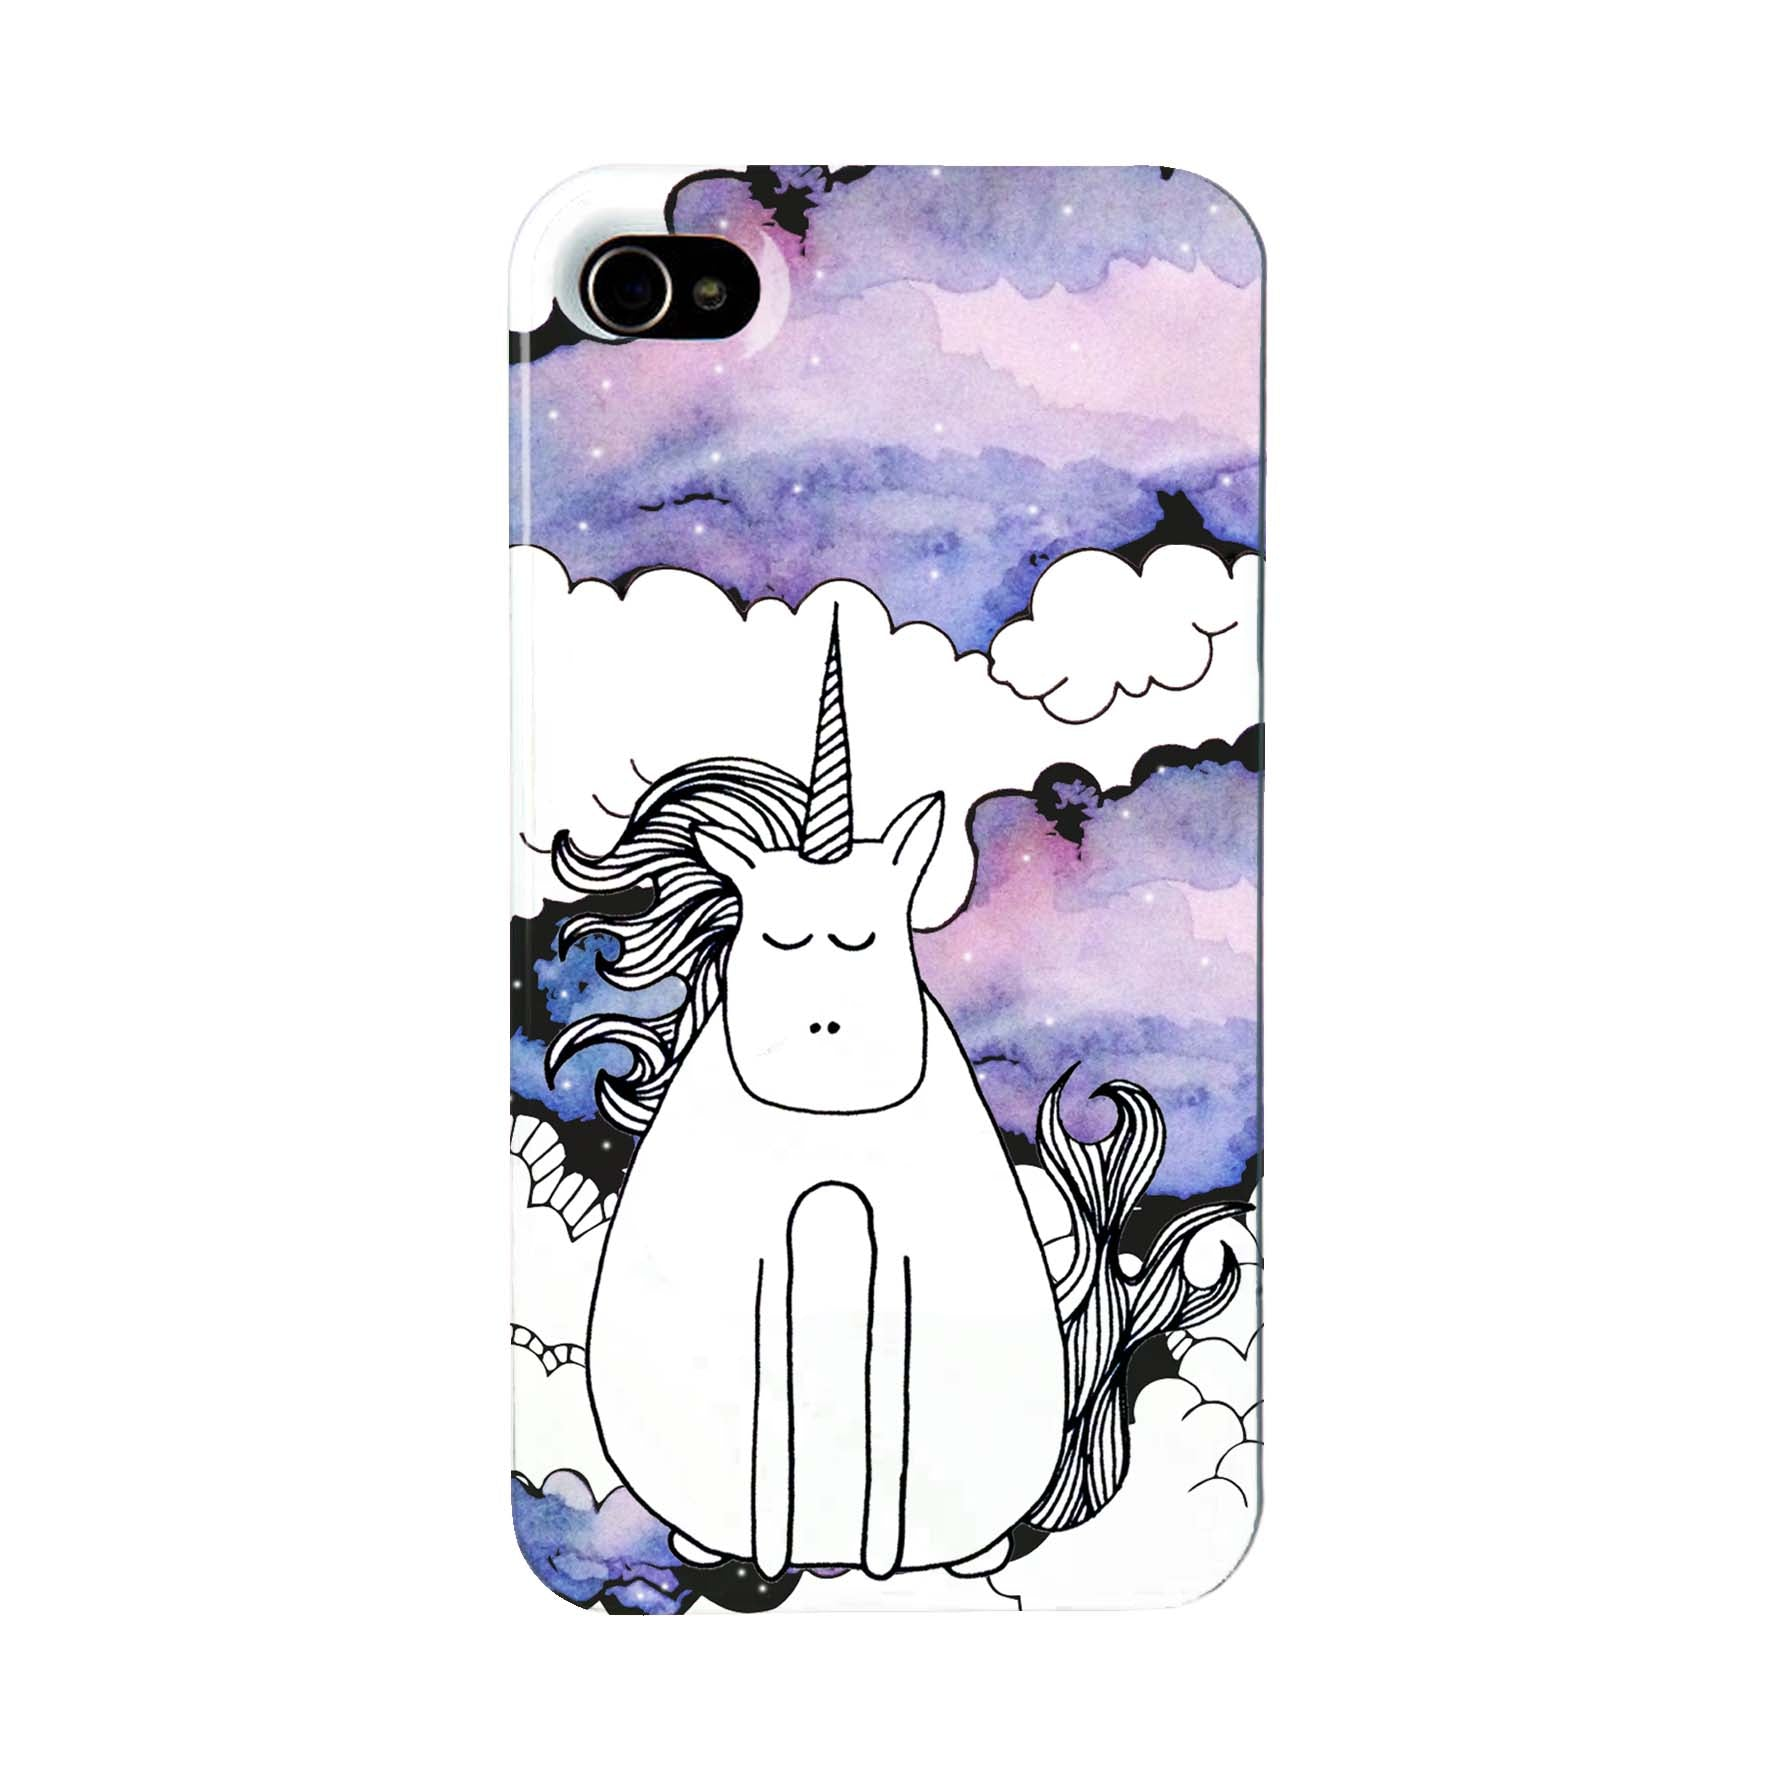 Phone case with a unicorn on a watercolour galaxy sky